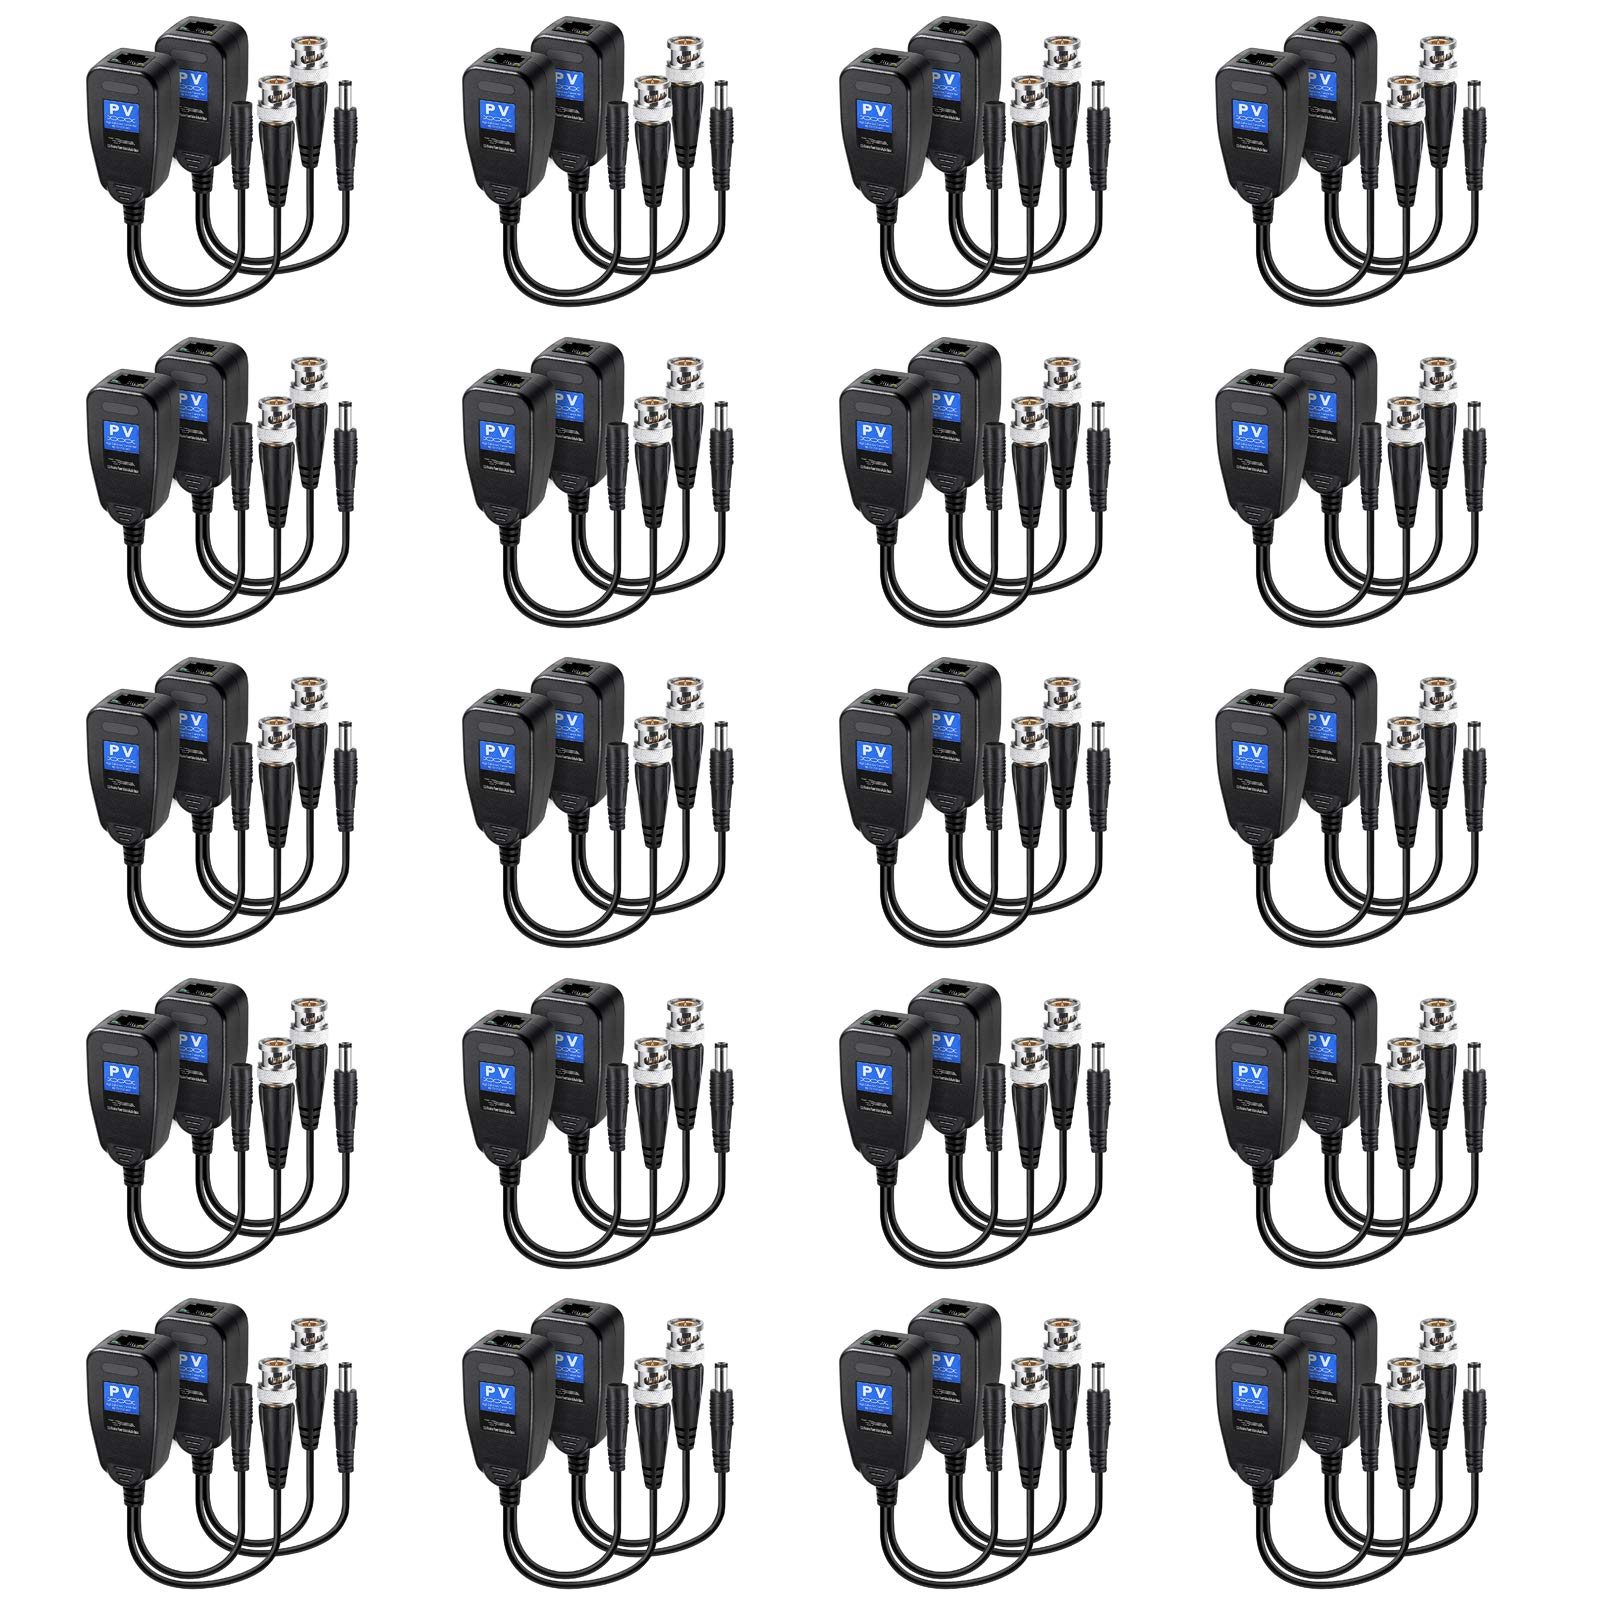 20 Pairs Passive Video Balun RJ45 Transceiver Transmitter HD-CVI/TVI/AHD/CVBS with DC Built-in Transient Suppression Protection for 1080P/2MP CCTV Security DVR Surveillance Camera System